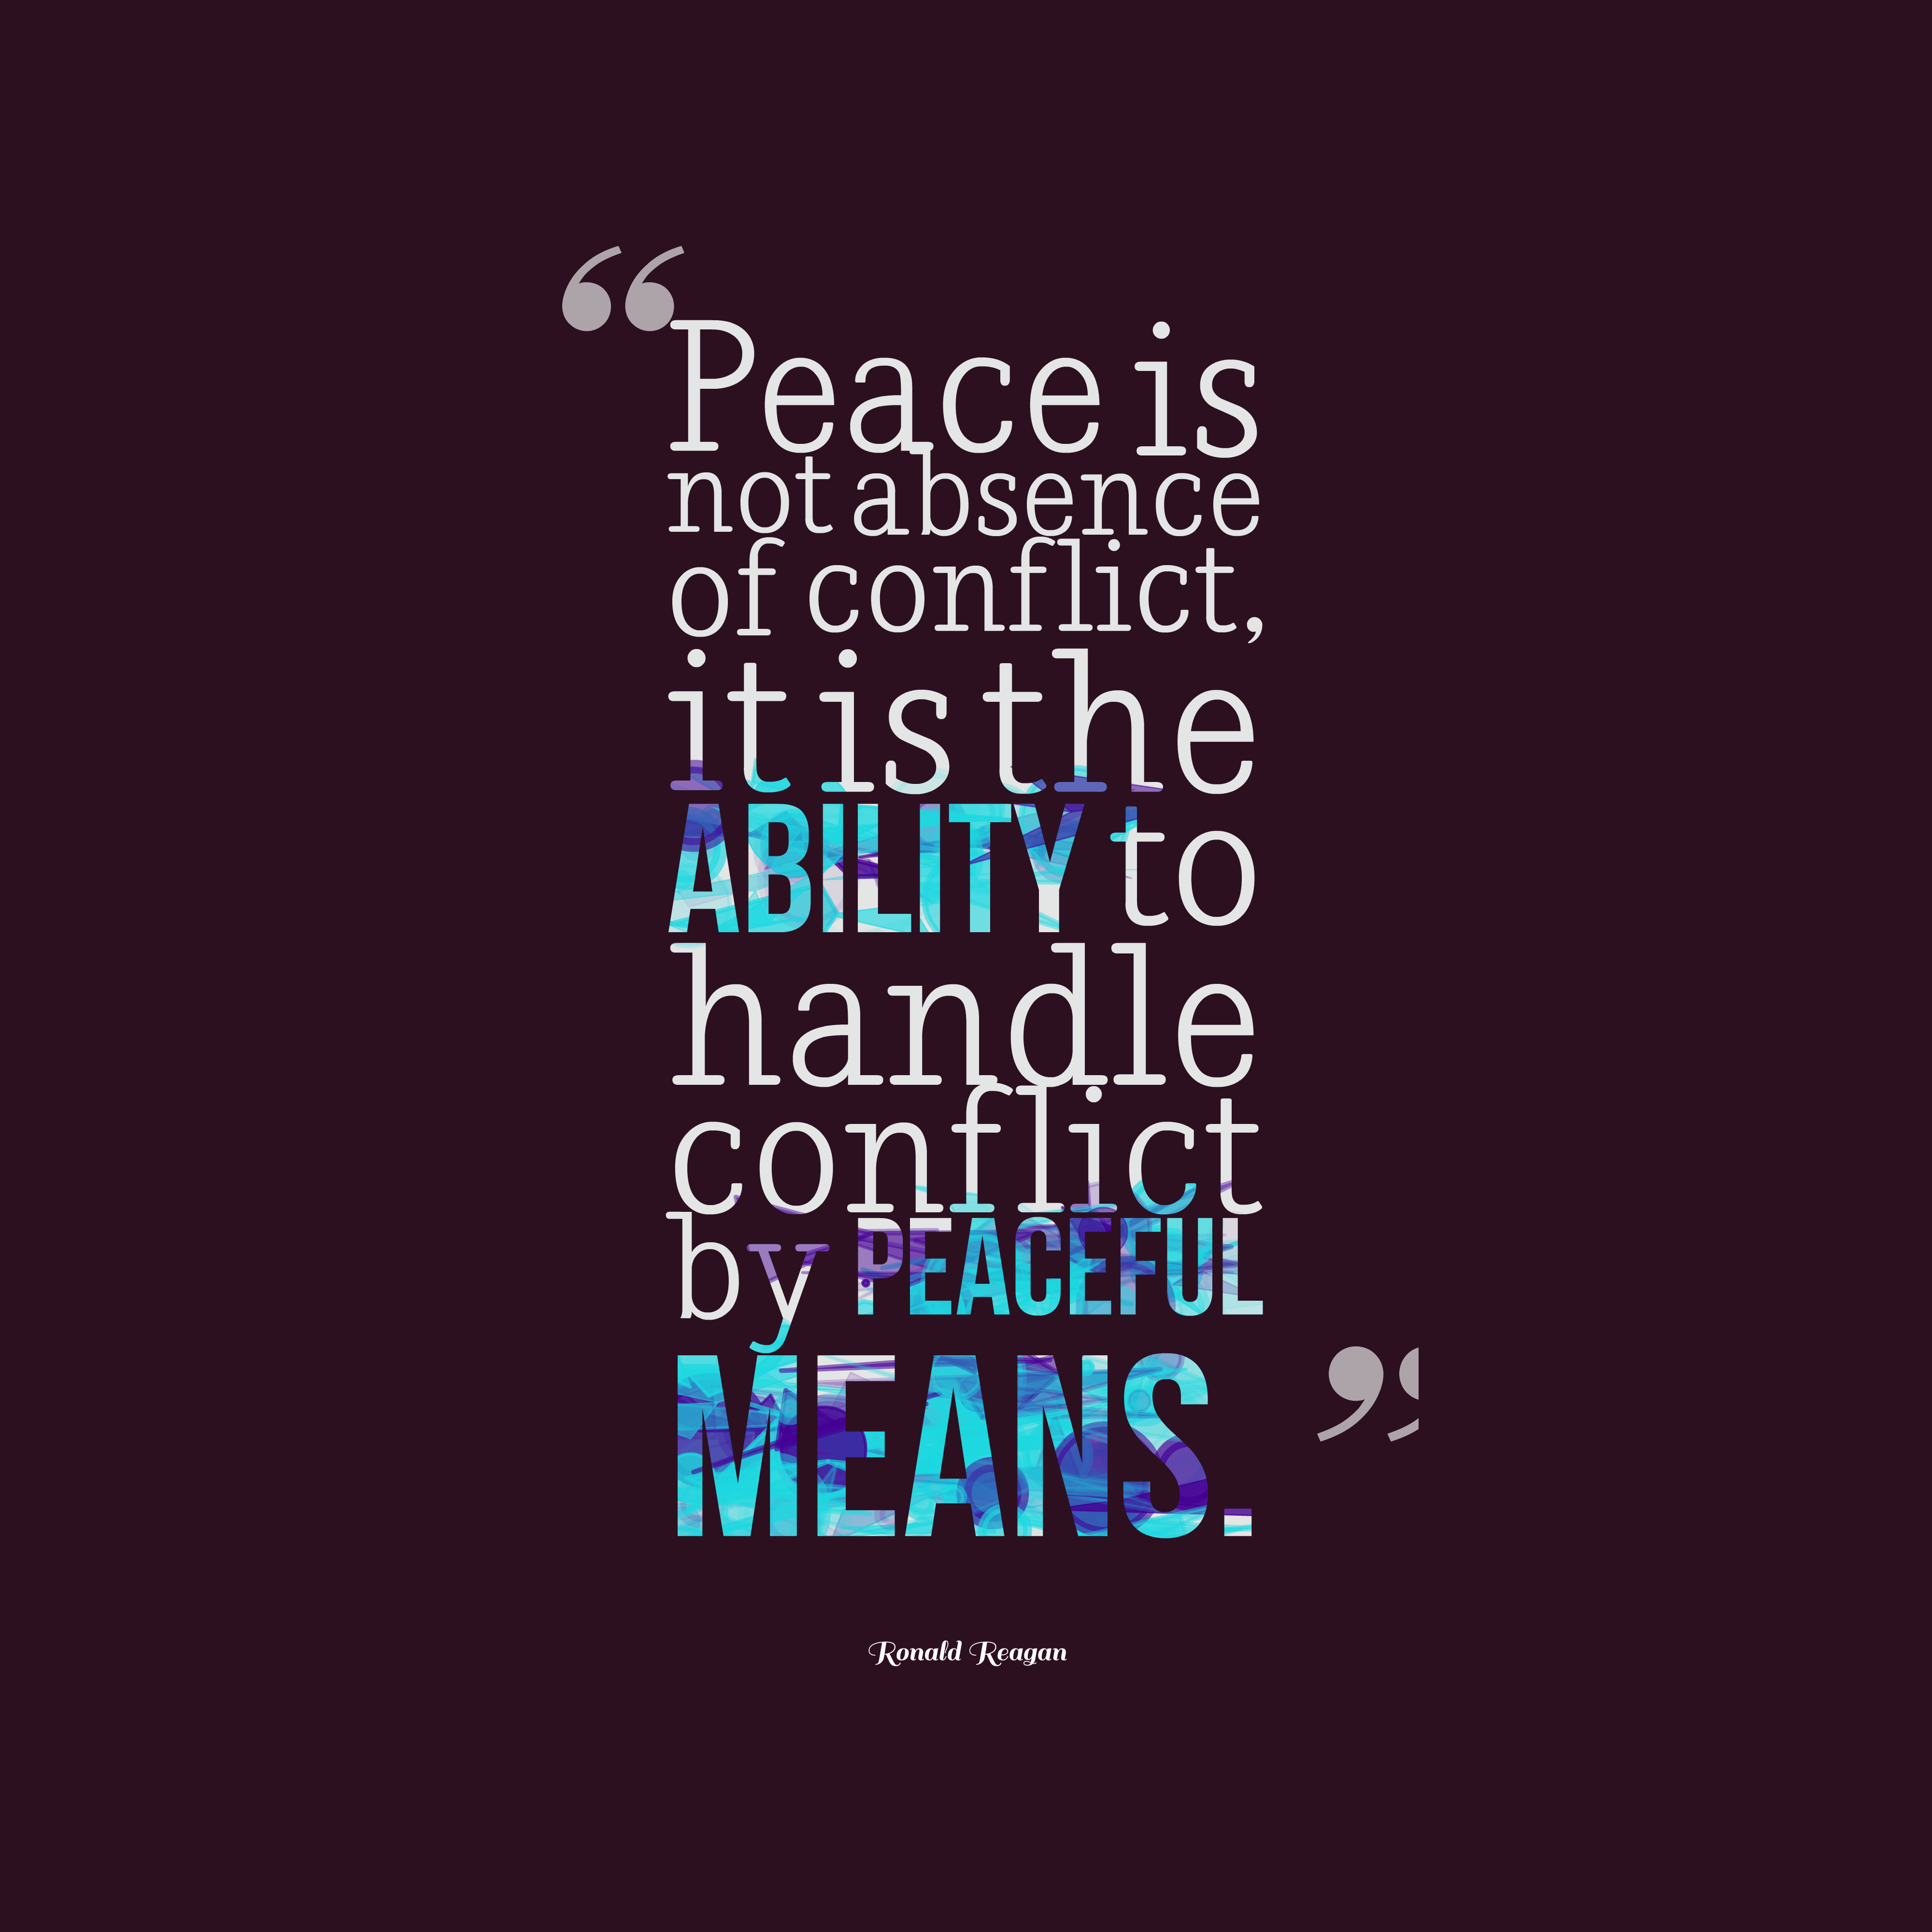 Quotes image of Peace is not absence of conflict, it is the ability to handle conflict by peaceful means.